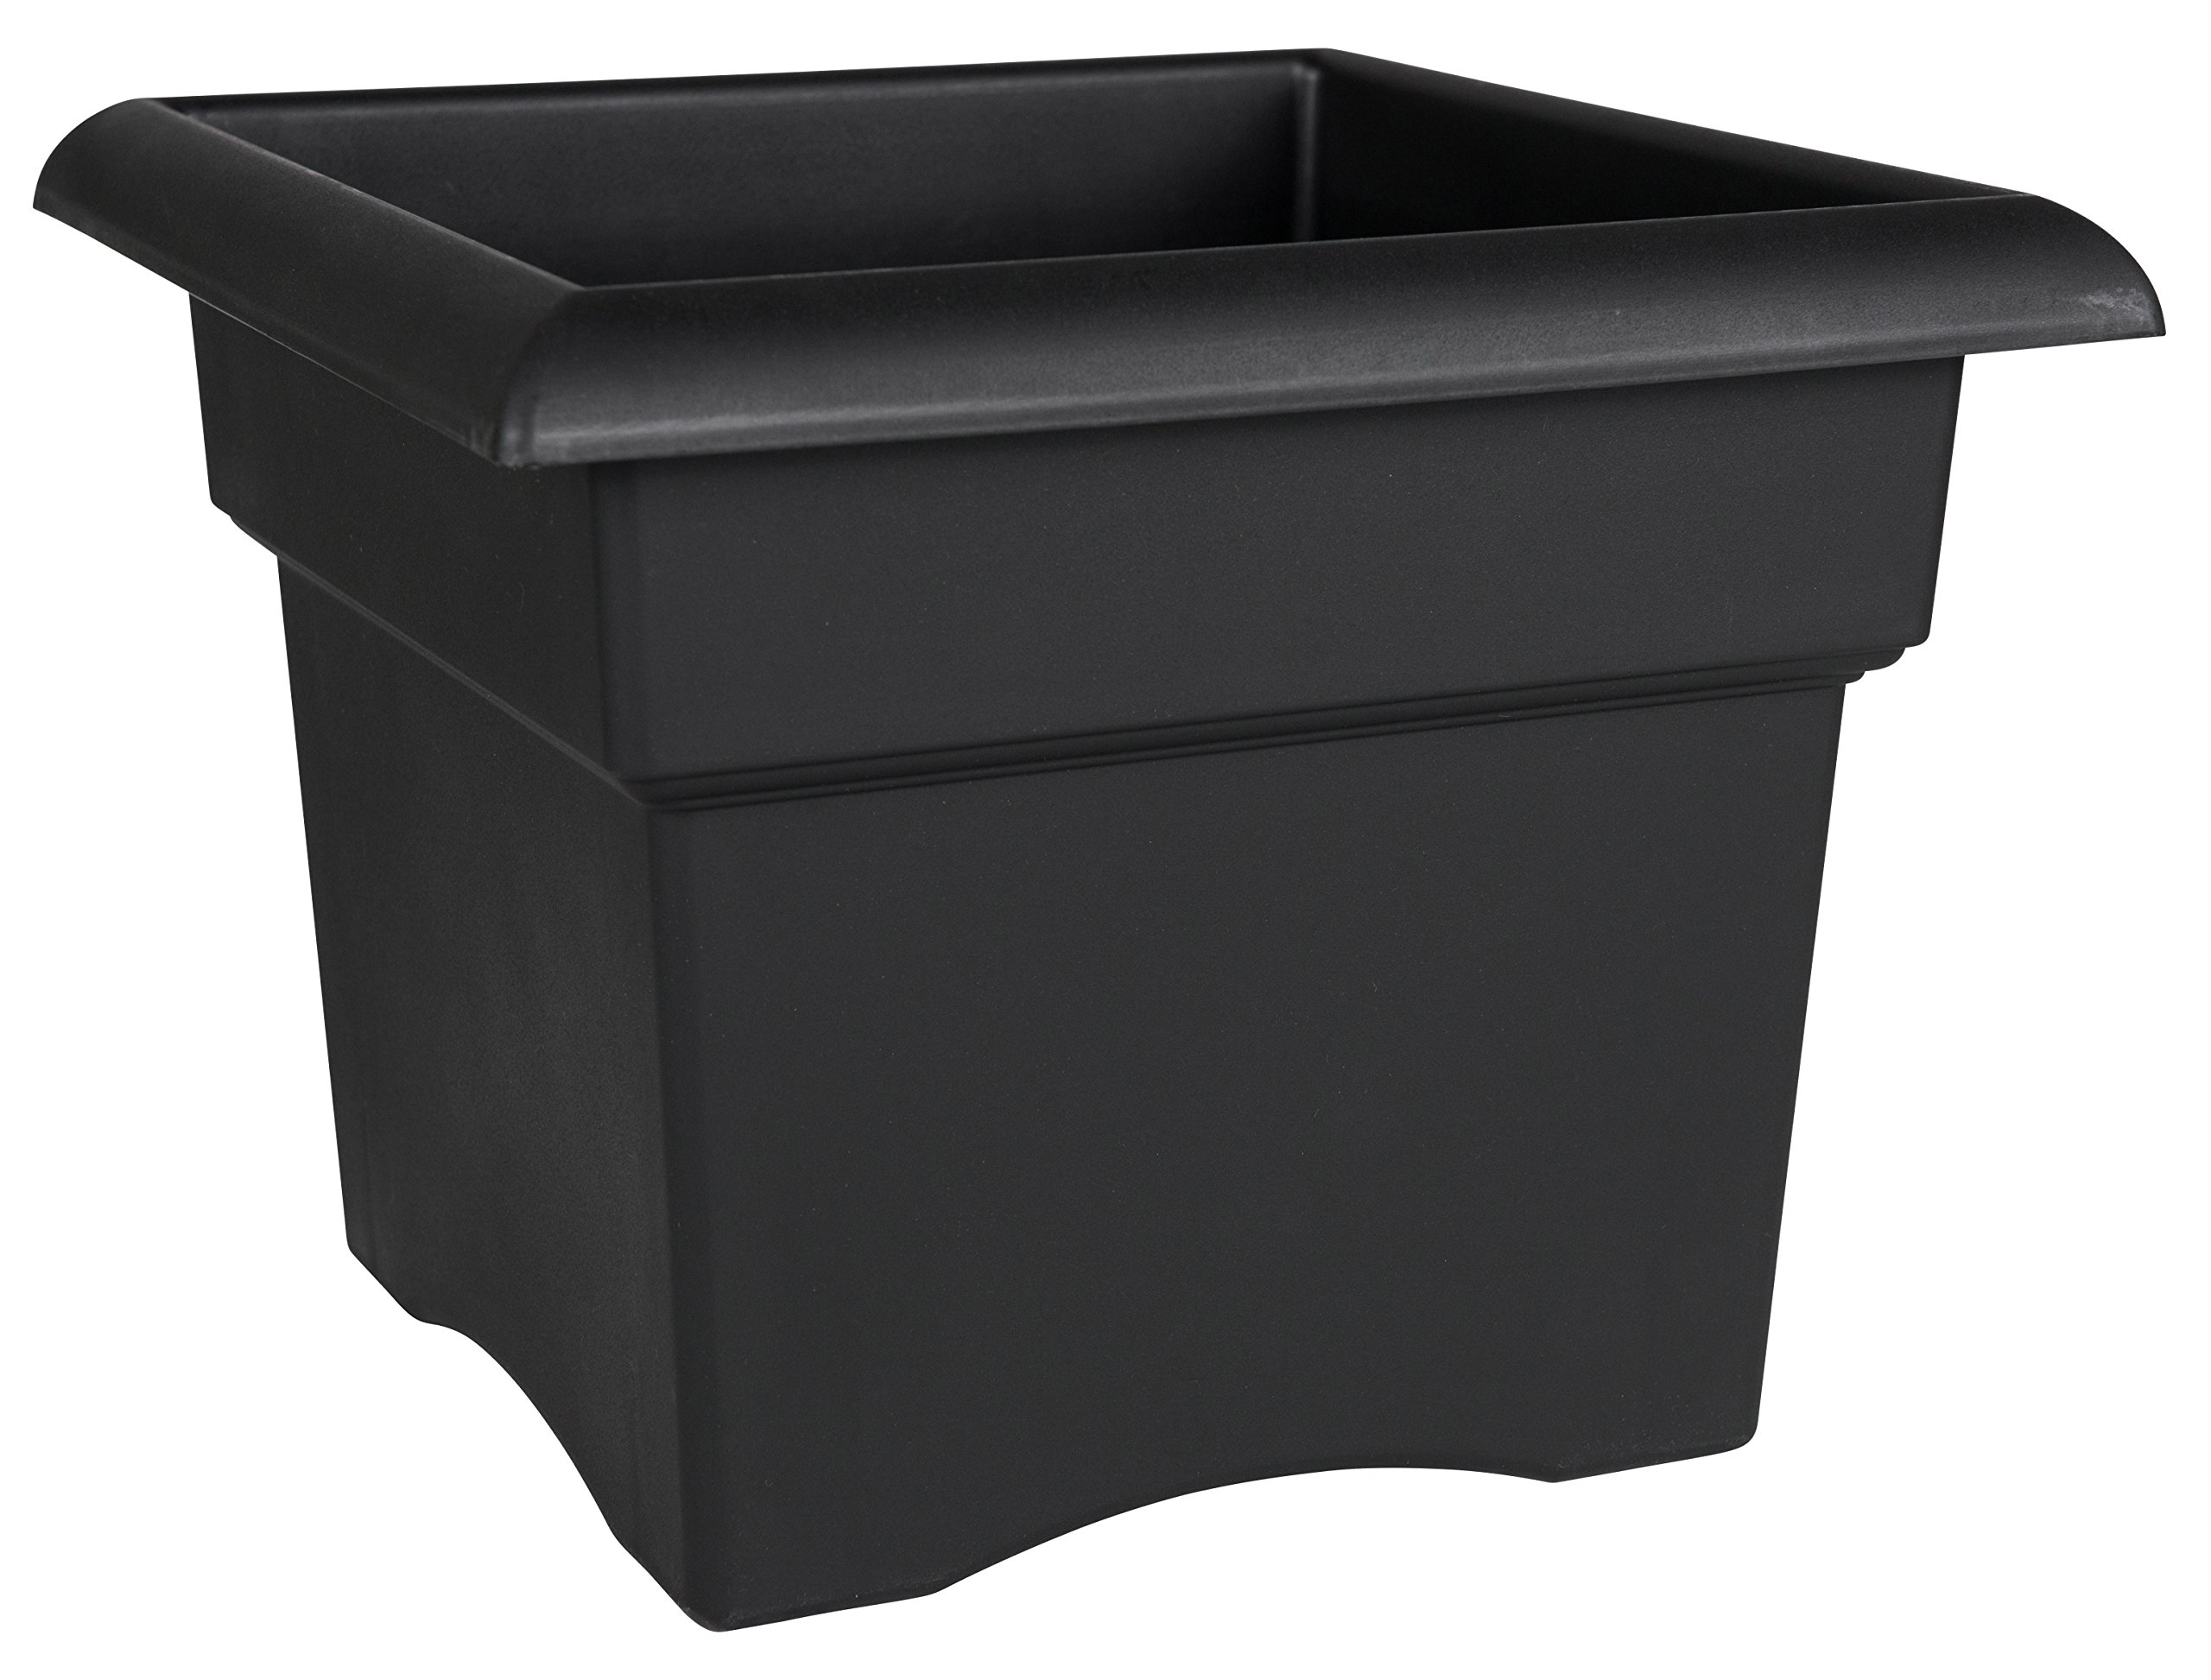 Fiskars 18 Inch Veranda 5 Gallon Box Planter, Black (57918) by Bloem